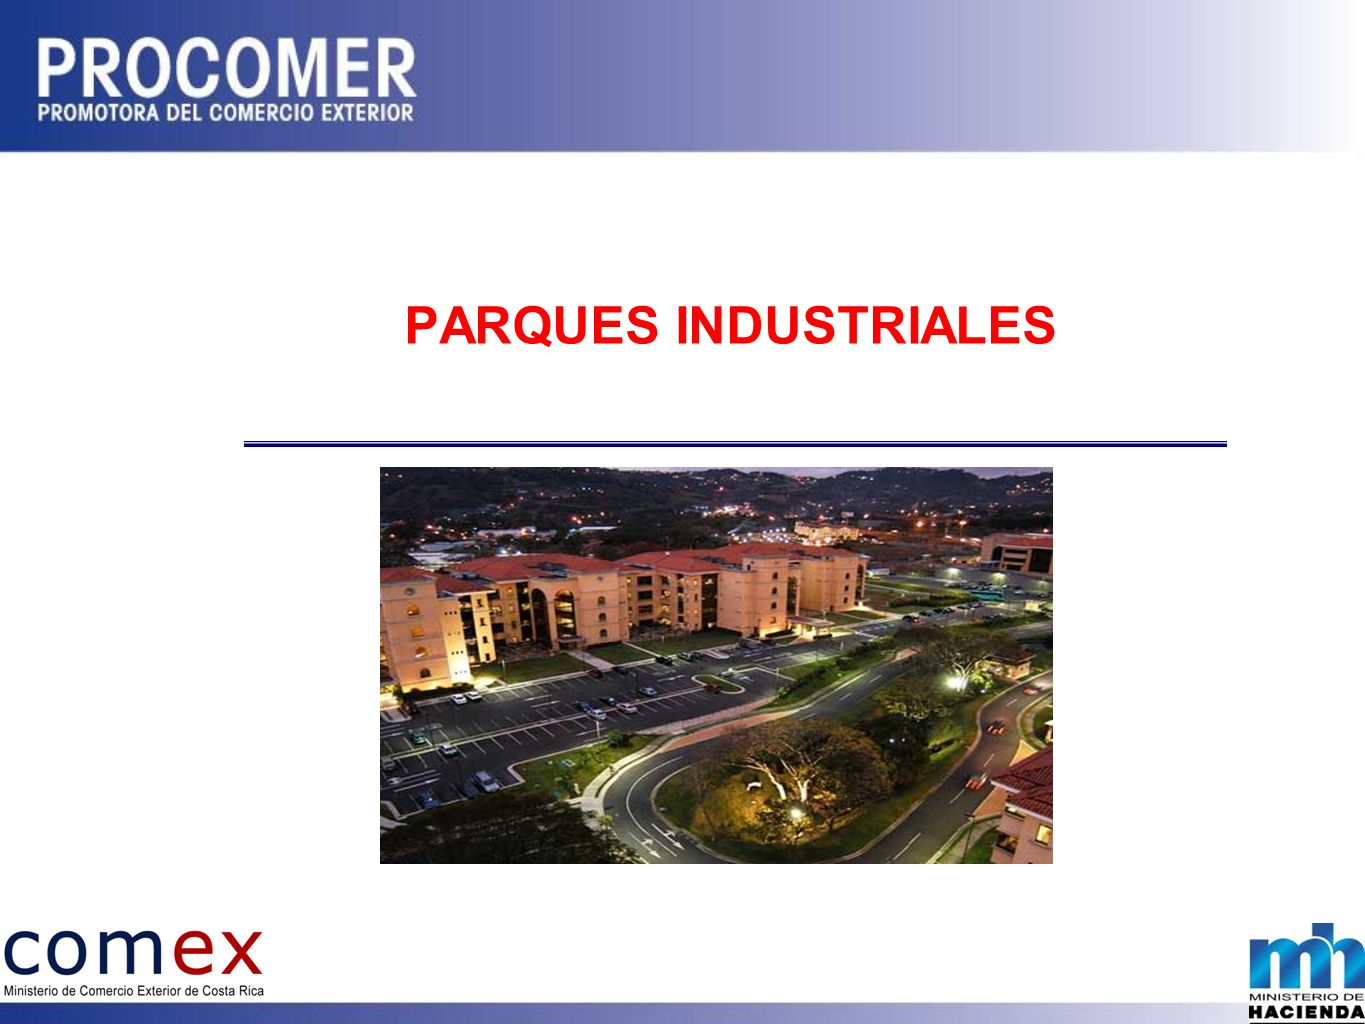 PARQUES INDUSTRIALES THIS REGIME IS REGULATED BY LAW 7210 AND ITS BYLAWS